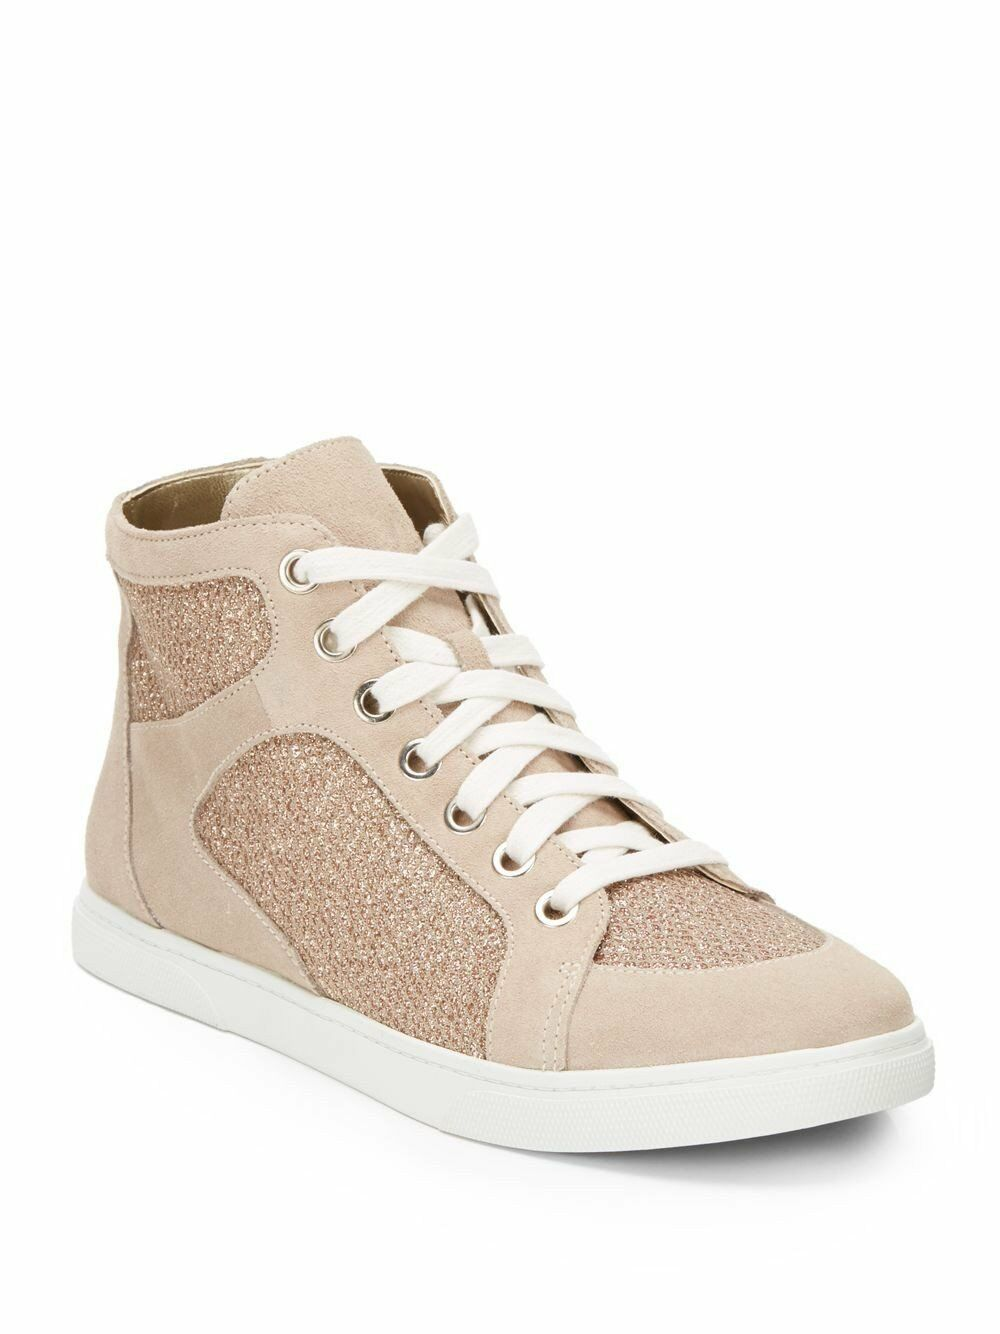 ENZO ANGIOLINI Women's Beige Easovann Glitter & Suede High Tops Sneakers  8.5M